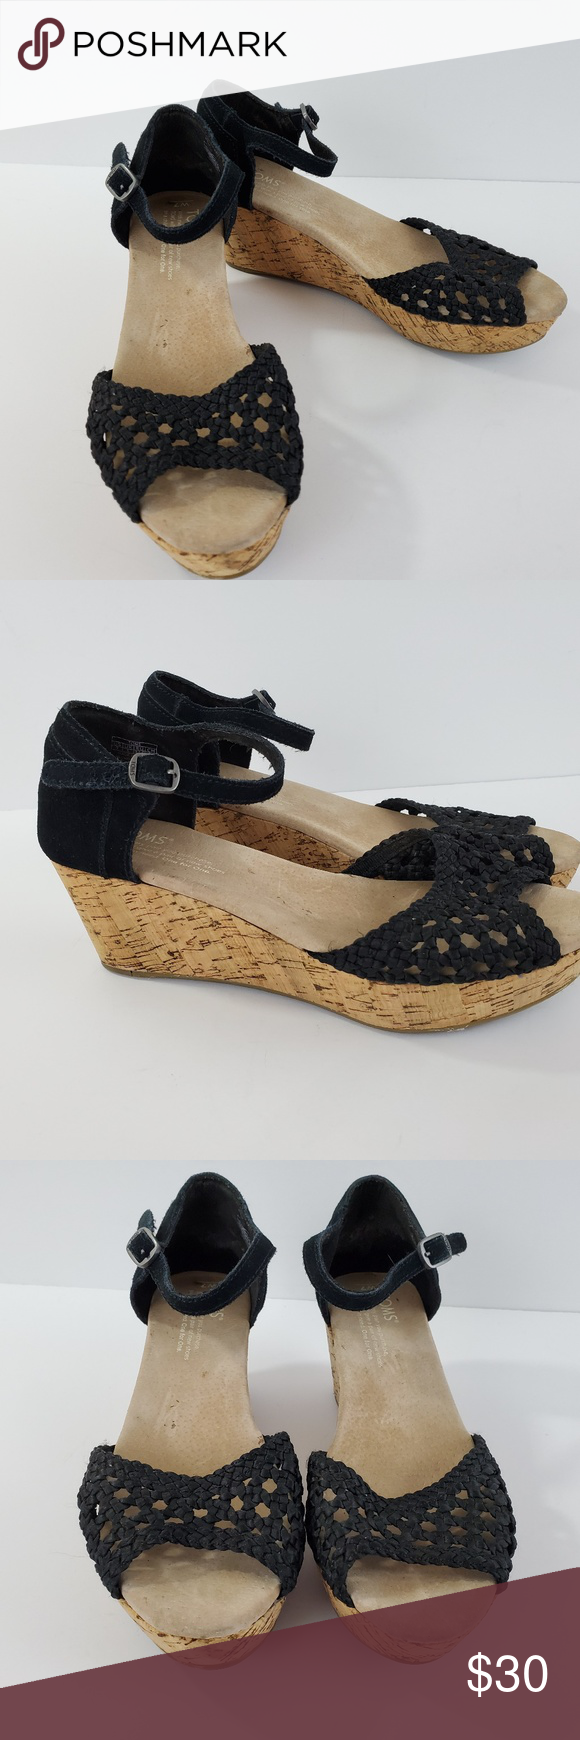 Toms Wedge Heel Shoes Black Suede Open Toe Size 7 Toms Wedge Heel Shoes  Womens 7  Black  Suede  Open Toe  Ankle Strap  Basket Weave Top 2.5 Heel  Good pre owned condition Toms Shoes Wedges #tomwedges